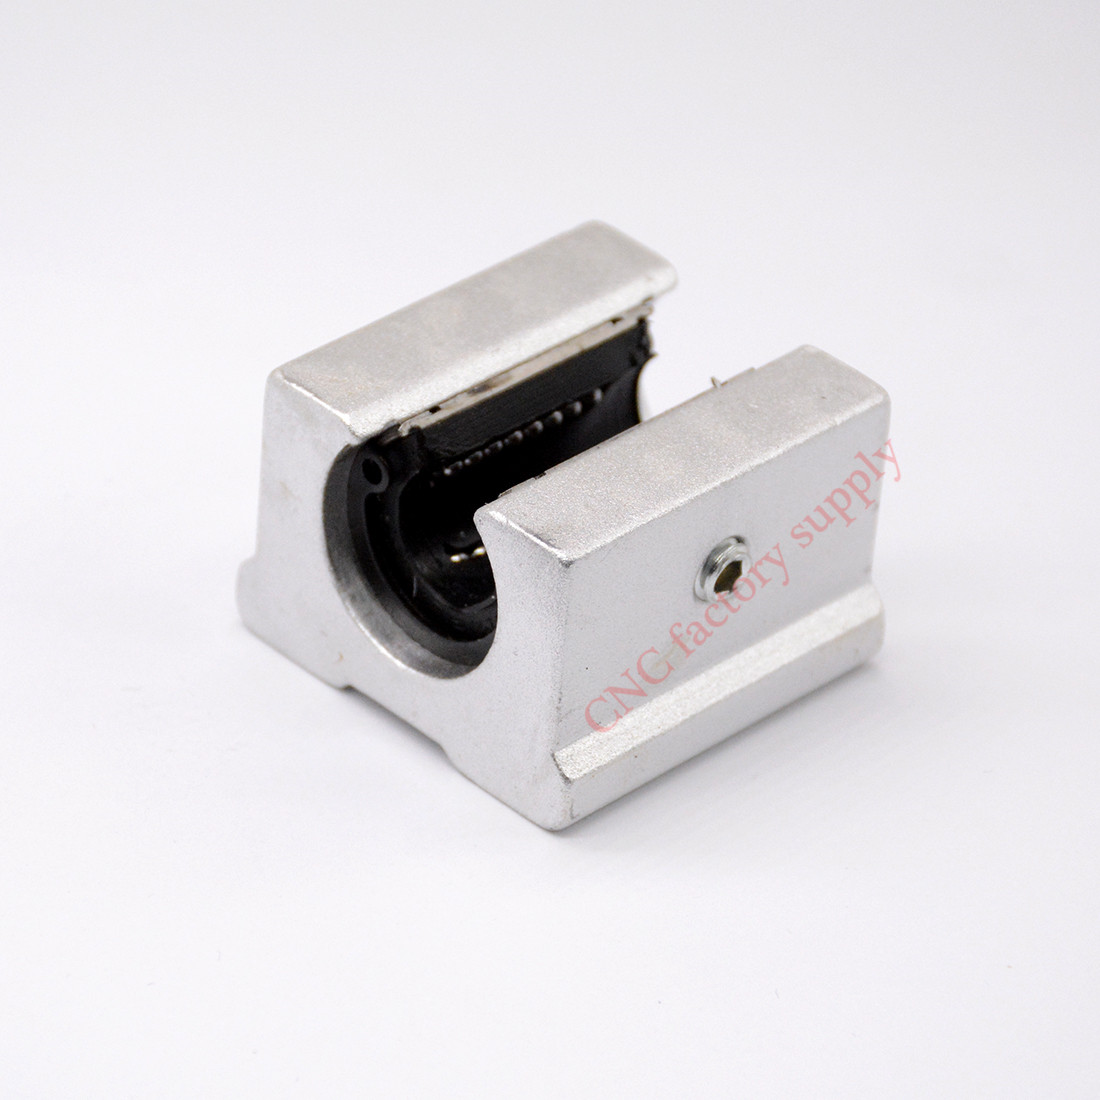 2pcs/lot Free shipping SBR16UU 16mm Linear Ball Bearing Block CNC Router SBR16 wertmark бра